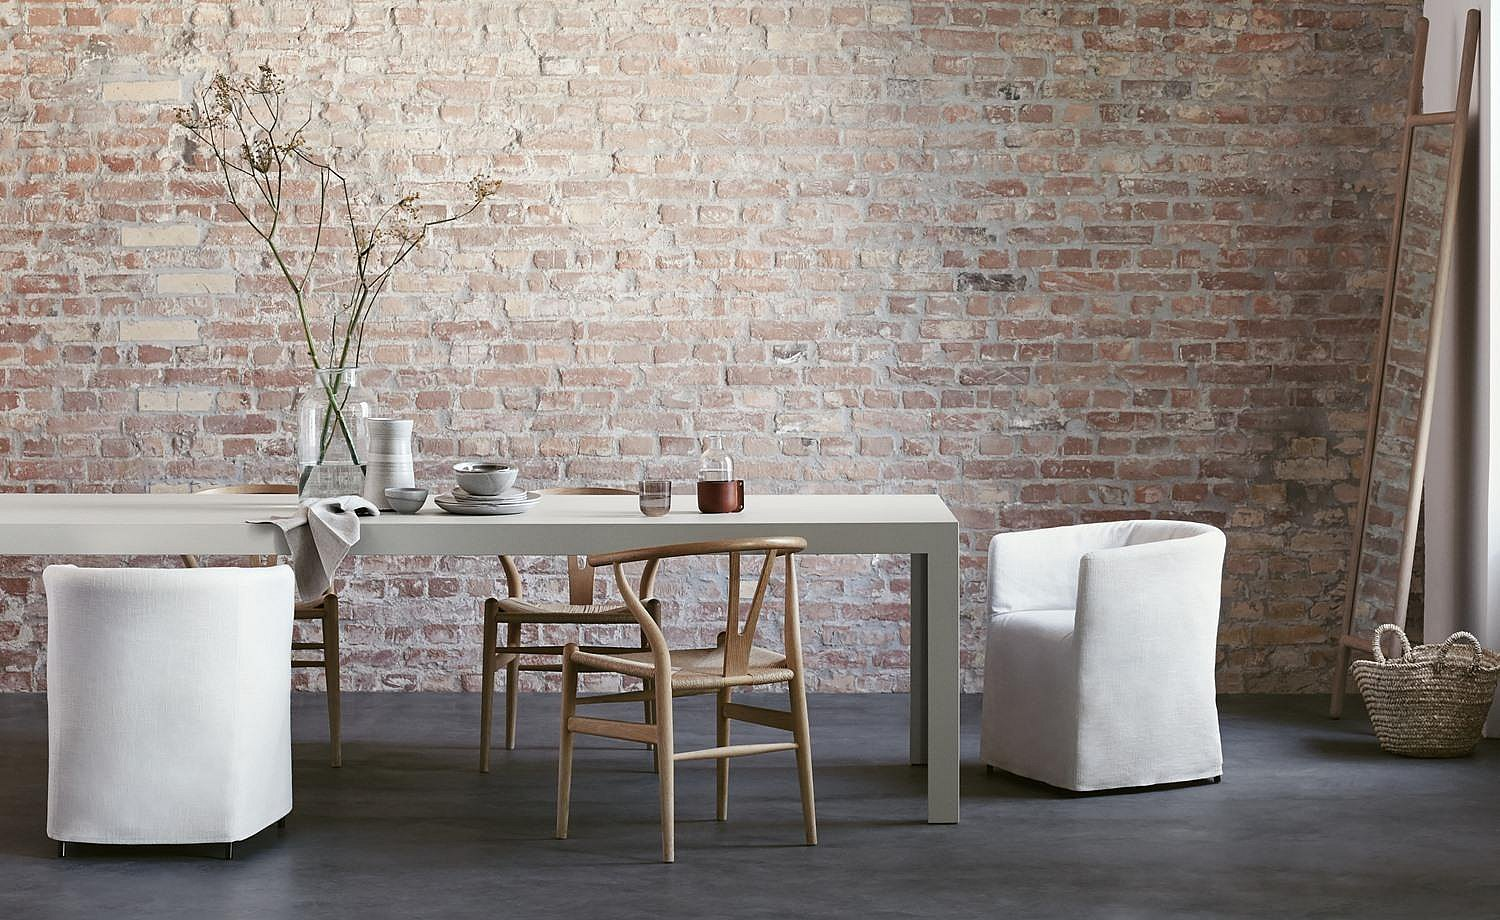 The solid dining table in white gives structure to the room